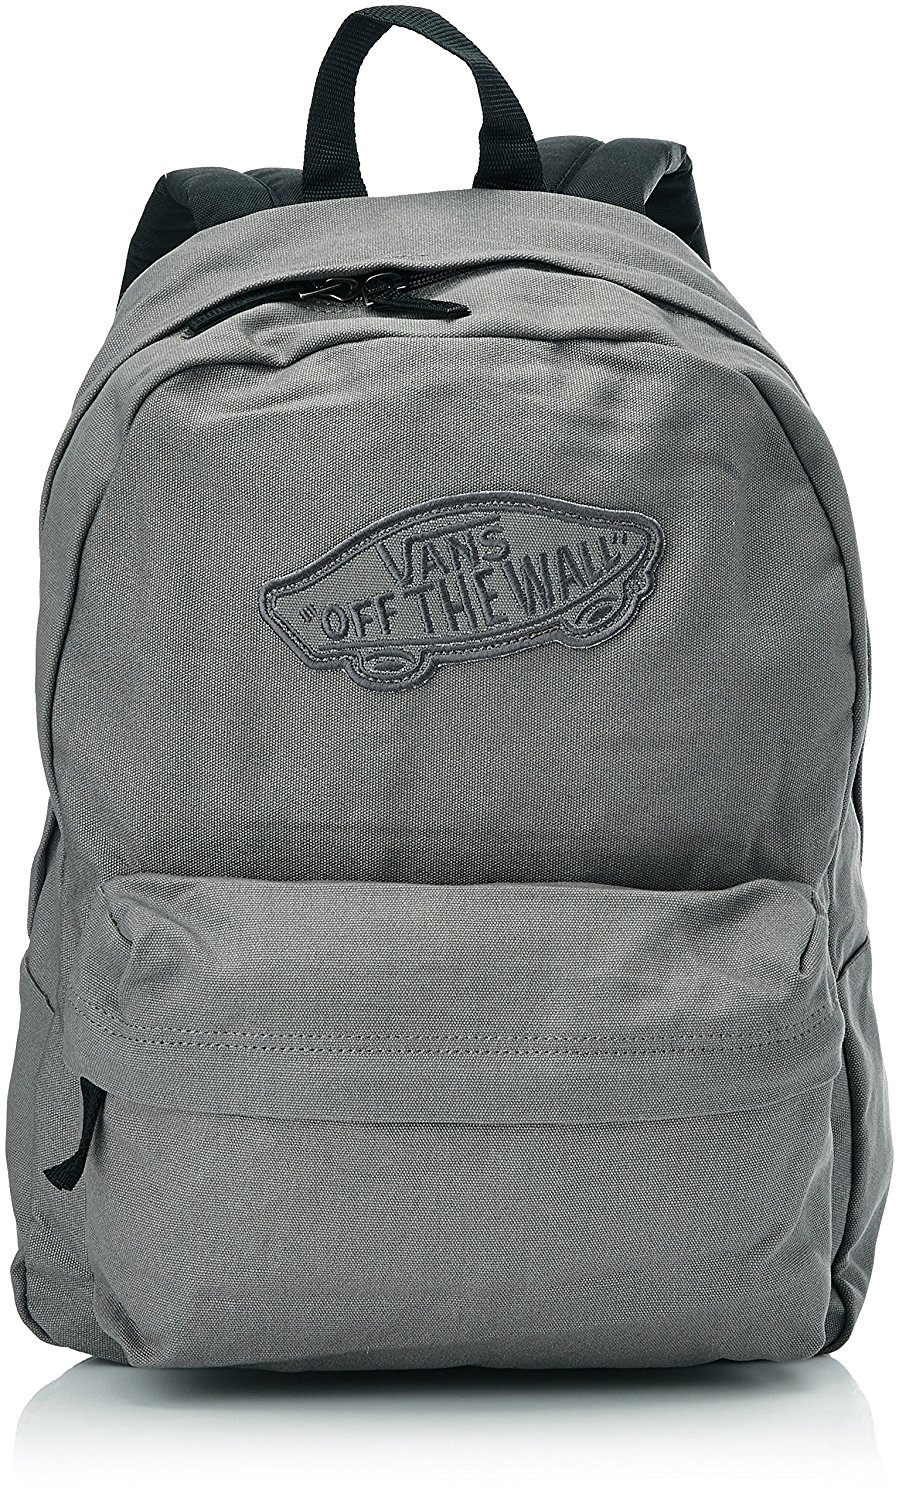 Get Quotations · Vans Realm Backpack 12fd50eb9cd2b